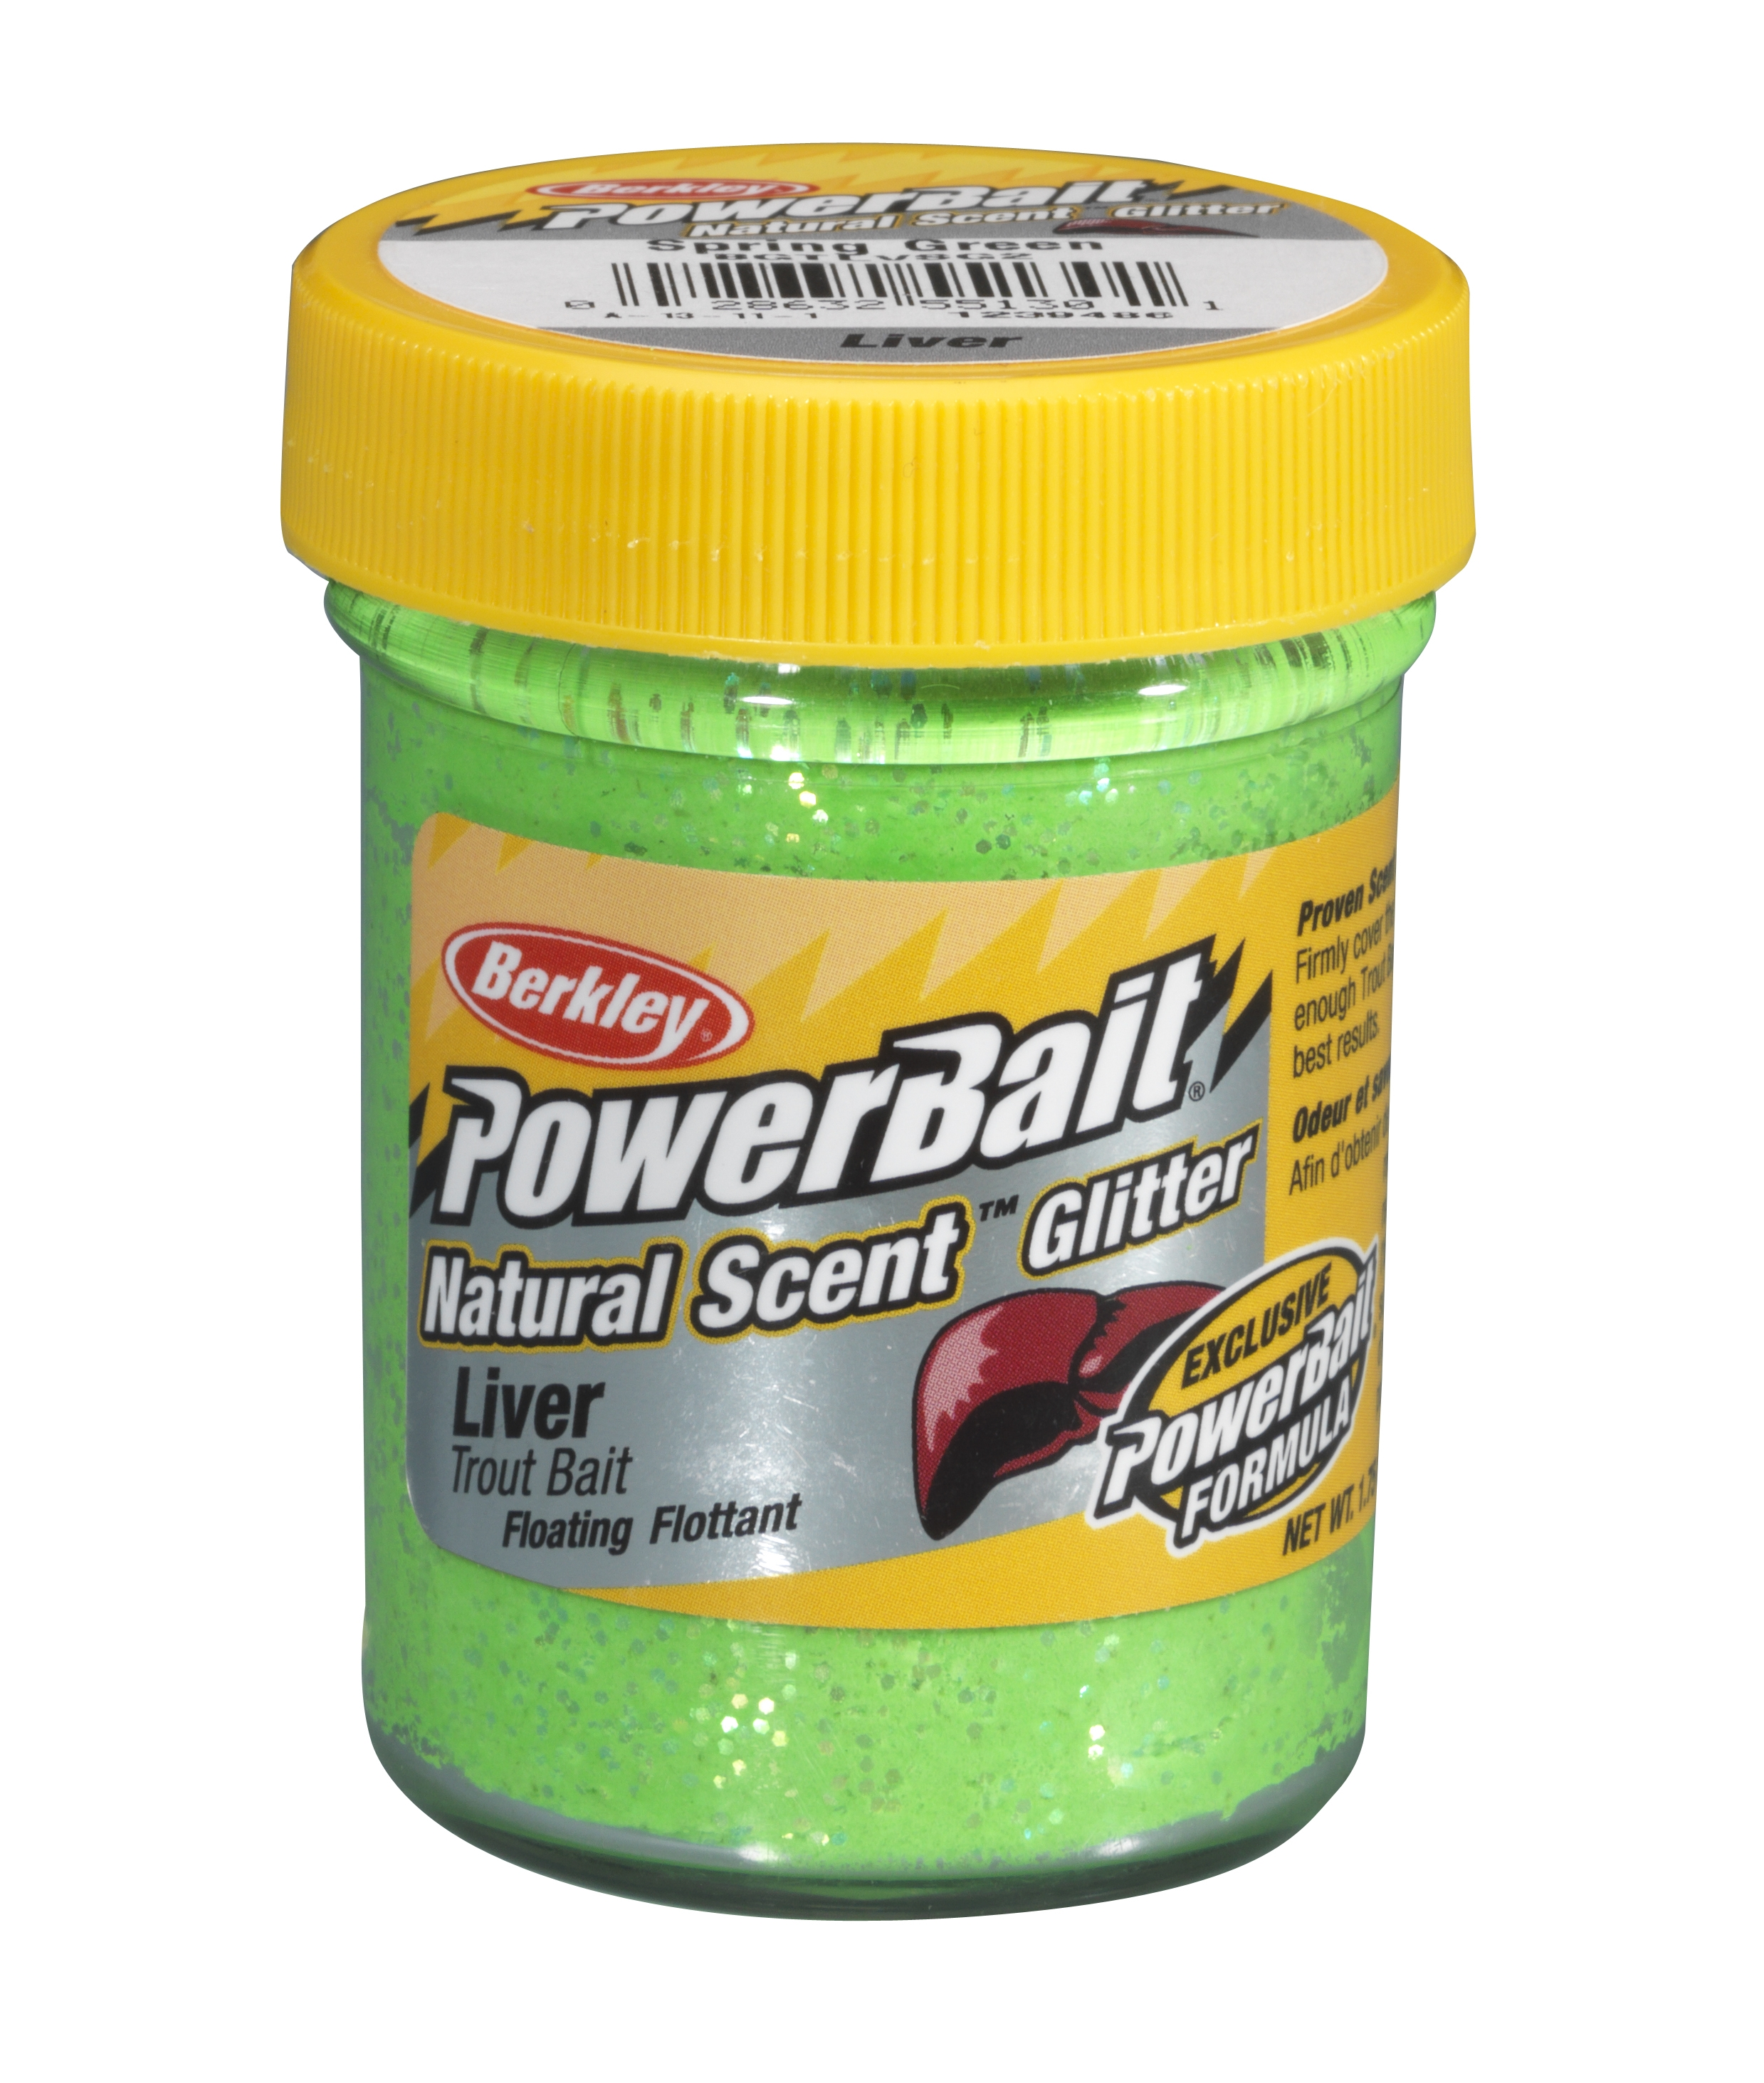 Berkley natural scent powerbait liver glasgow angling centre for Fishing with powerbait